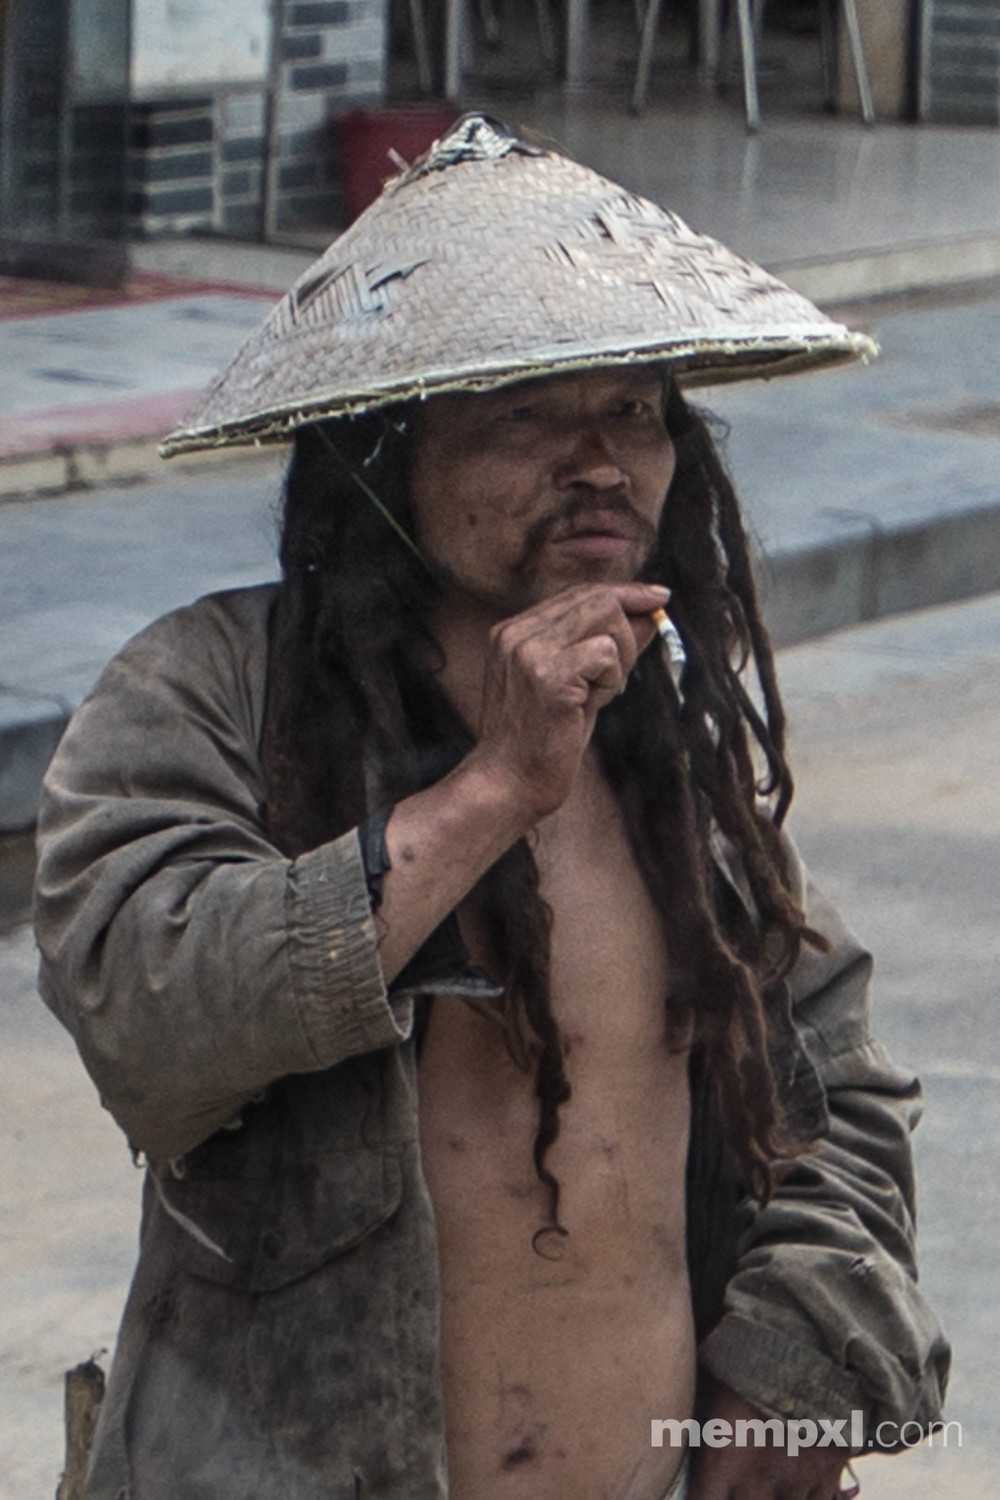 Chineese man dreadlocks3 - Guilin April 2015 WM.jpg